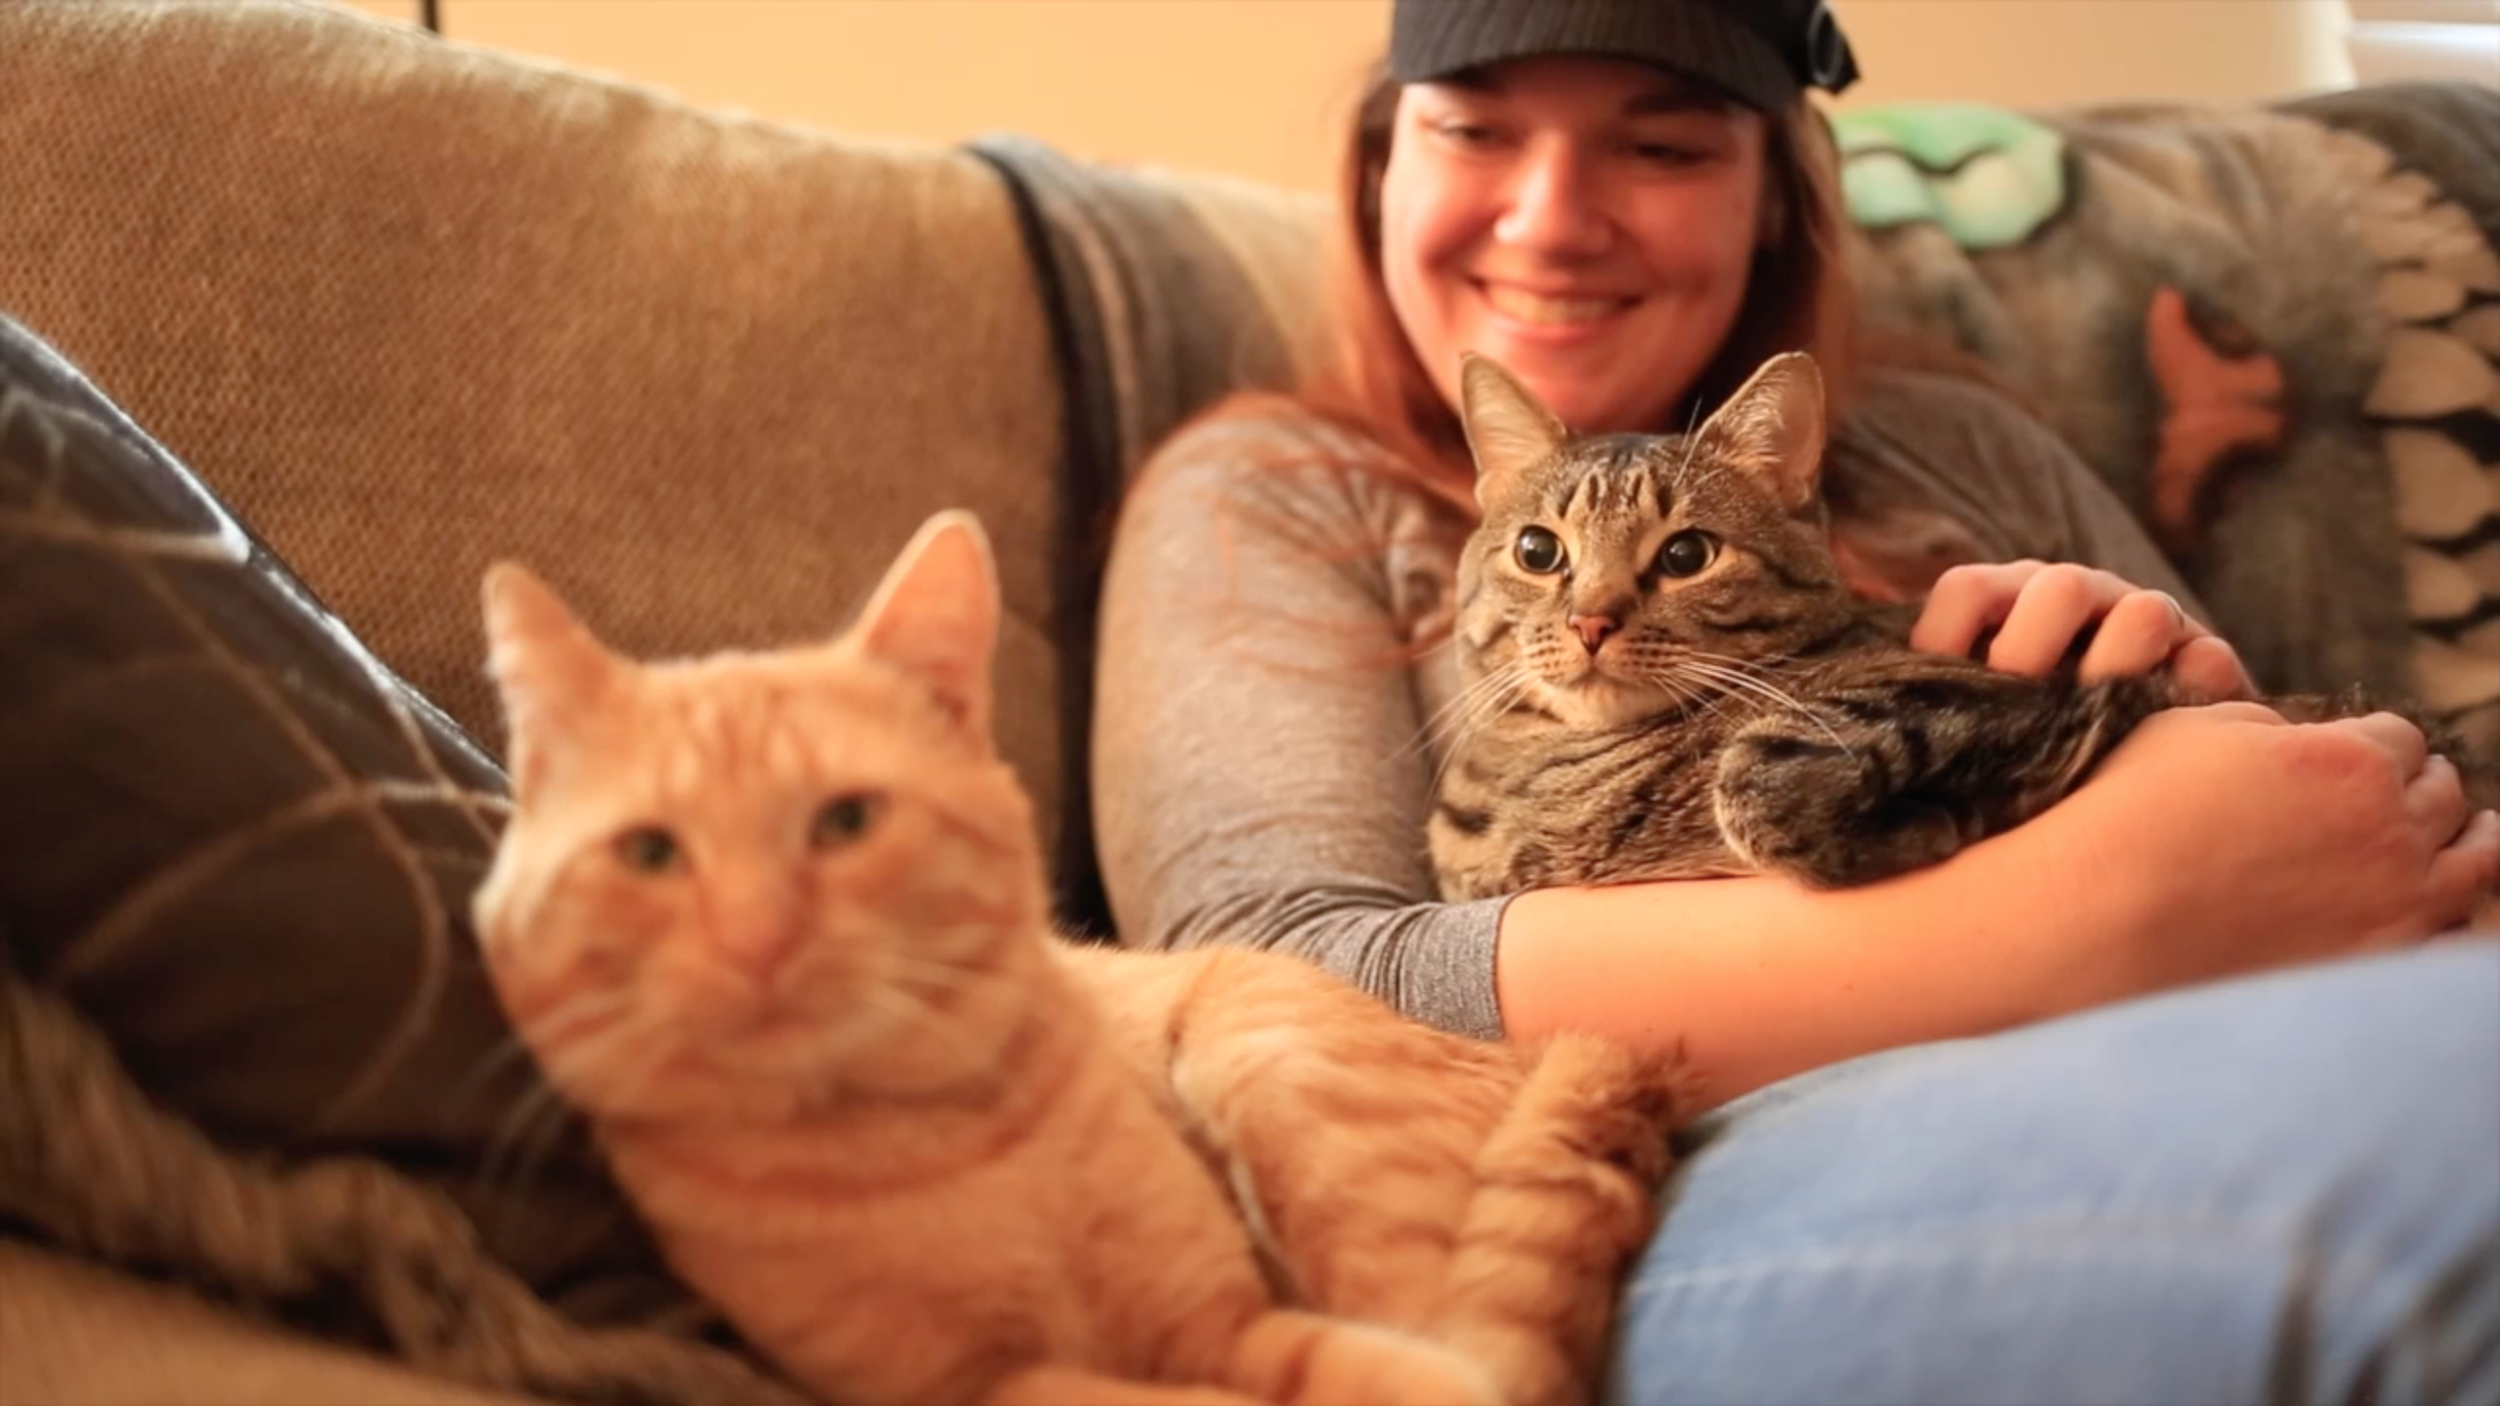 Two very happy, pampered FIV cats. See them in the video!